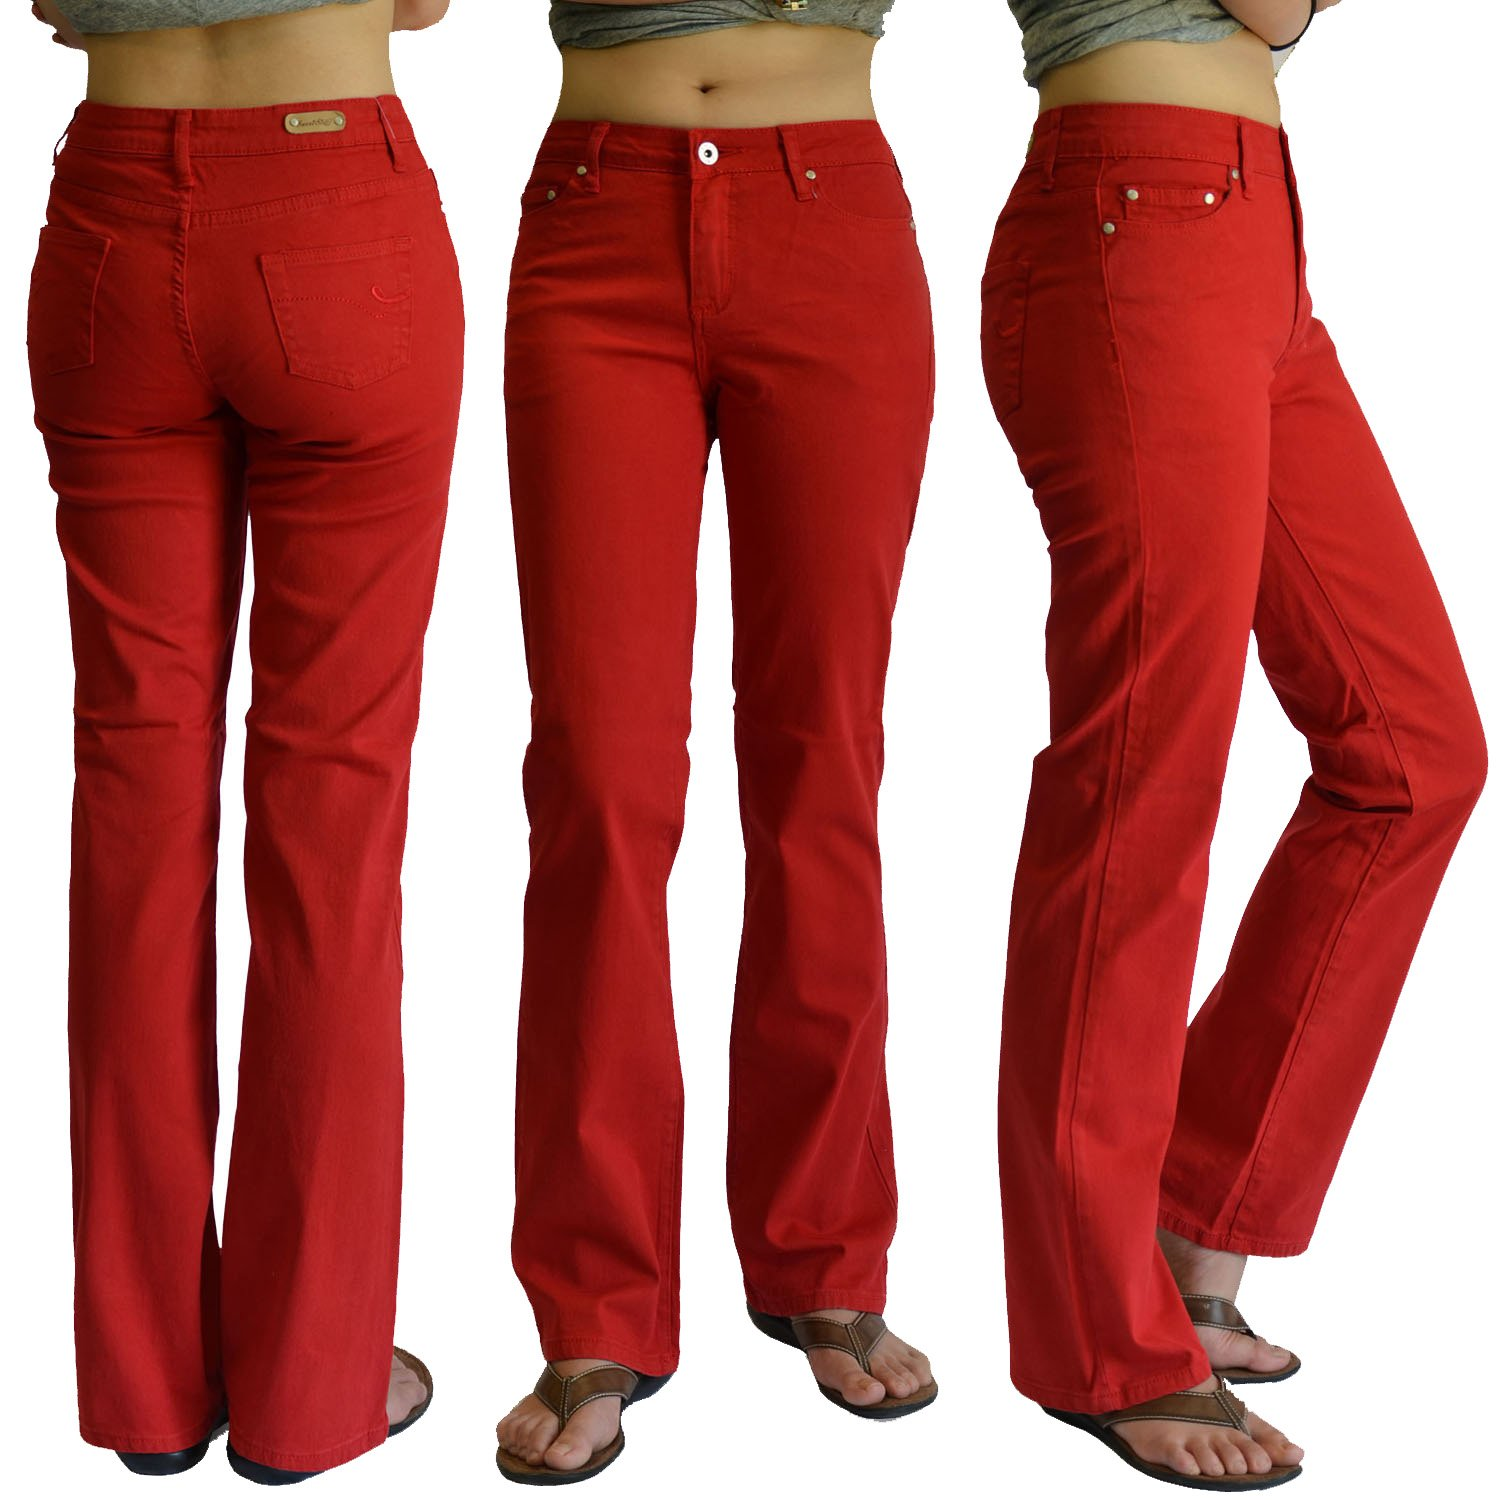 WOMENS ASSORTED COLOR DENIM STRETCH JEANS SIZE:3-17 #L5834 at ...